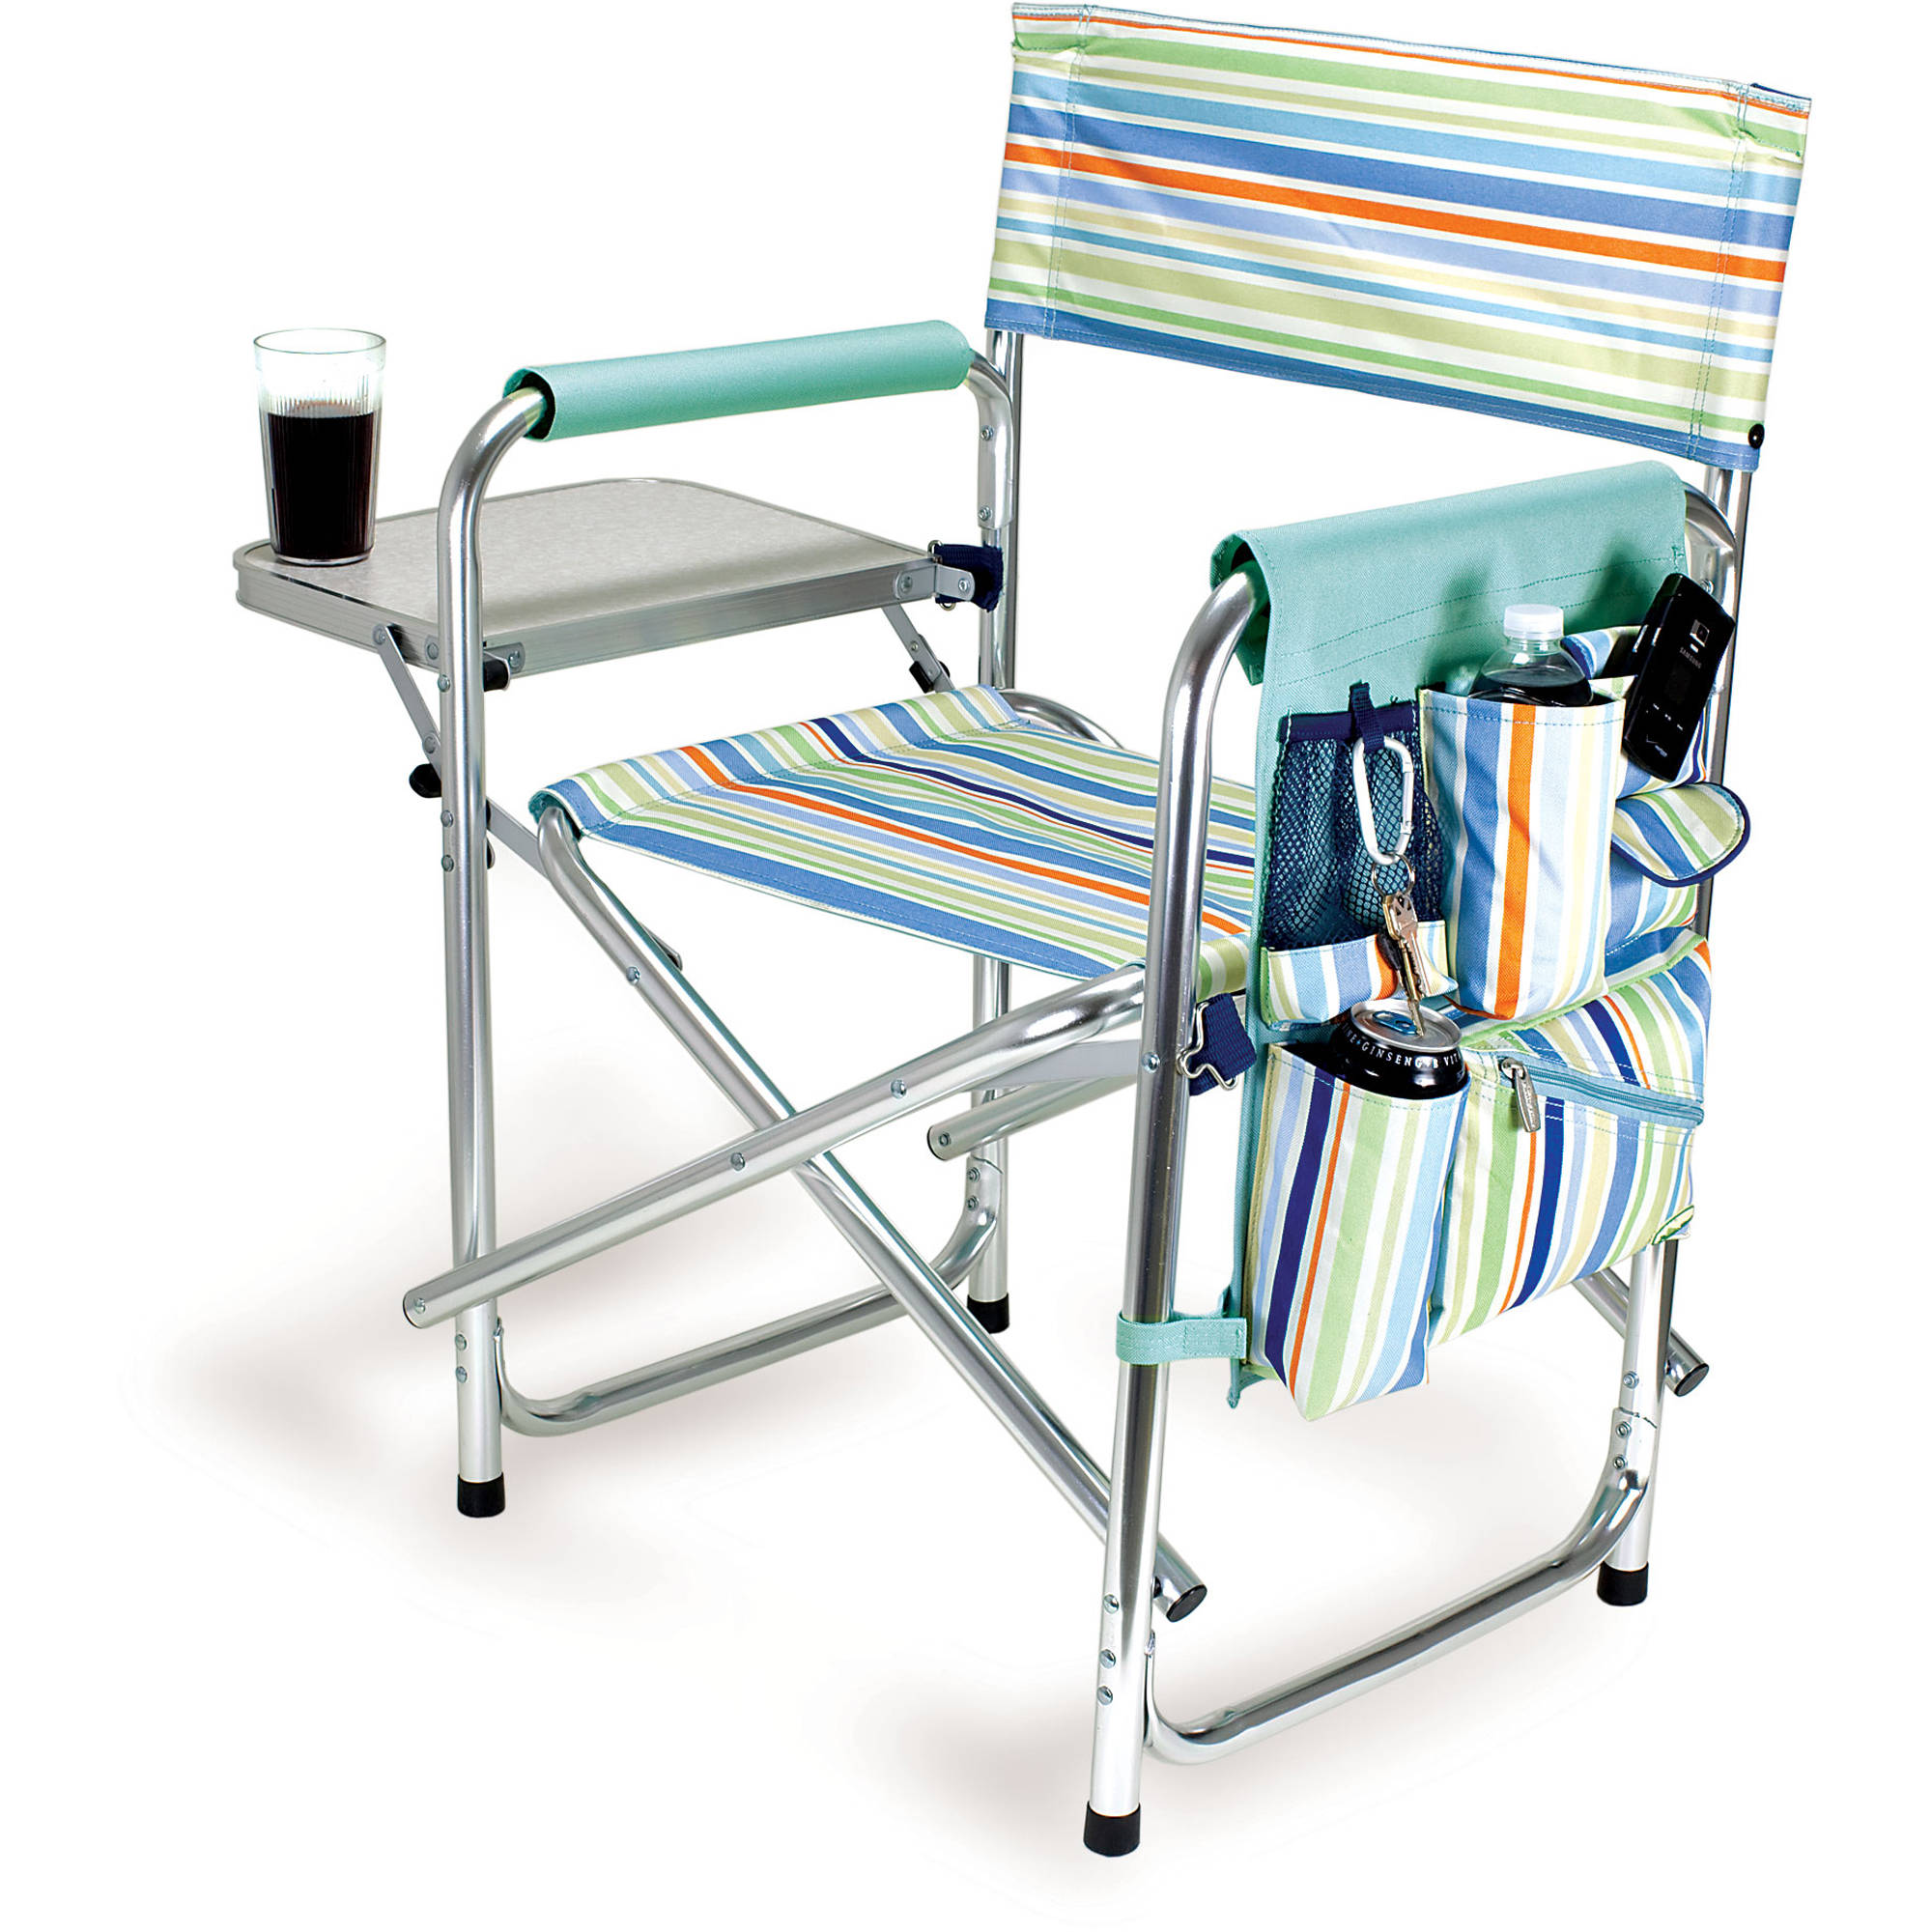 picnic time folding chair dining table with storage sports st tropez 809 00 991 000 b andh